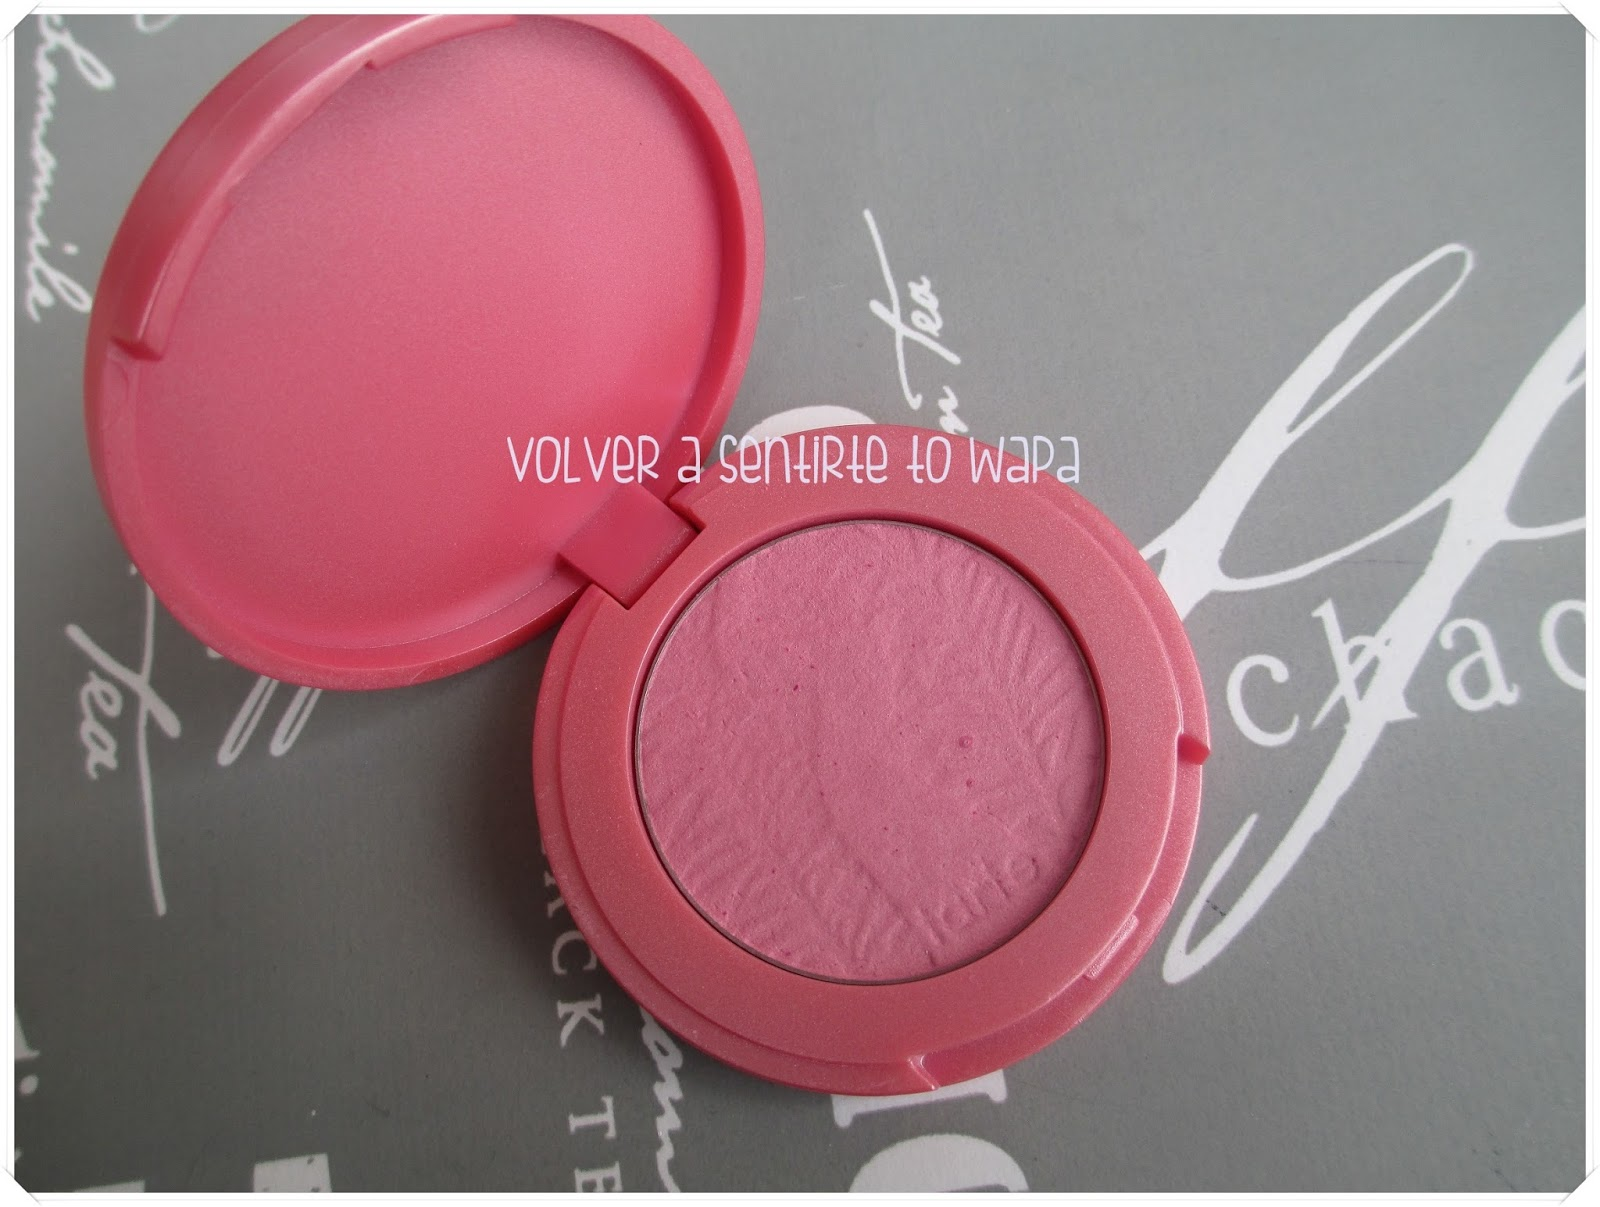 Colorete Dollface de Tarte Cosmetics